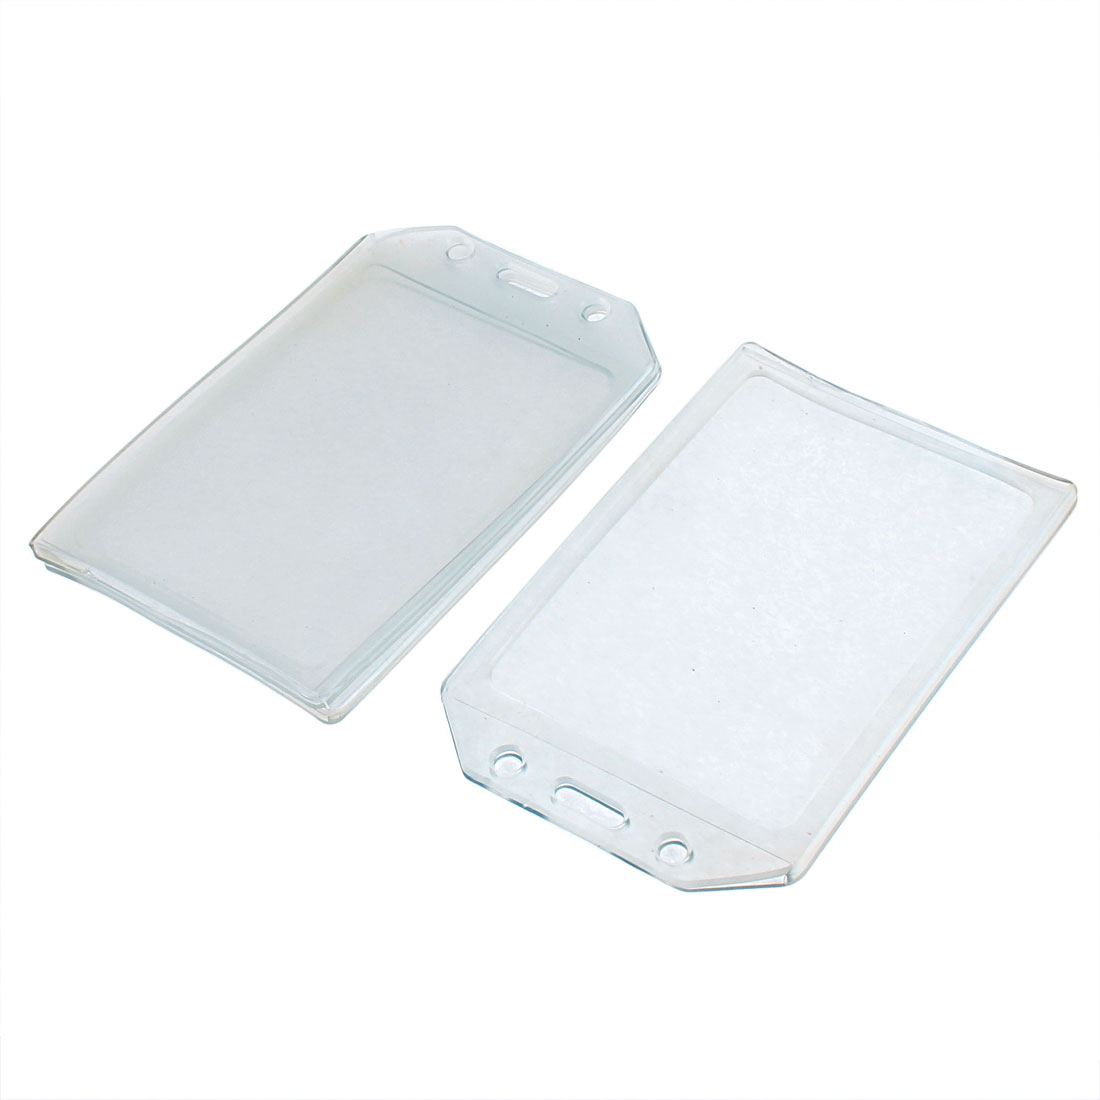 Plastic Vertical Business Bank Name ID Card Holder Cases Container 3pcs